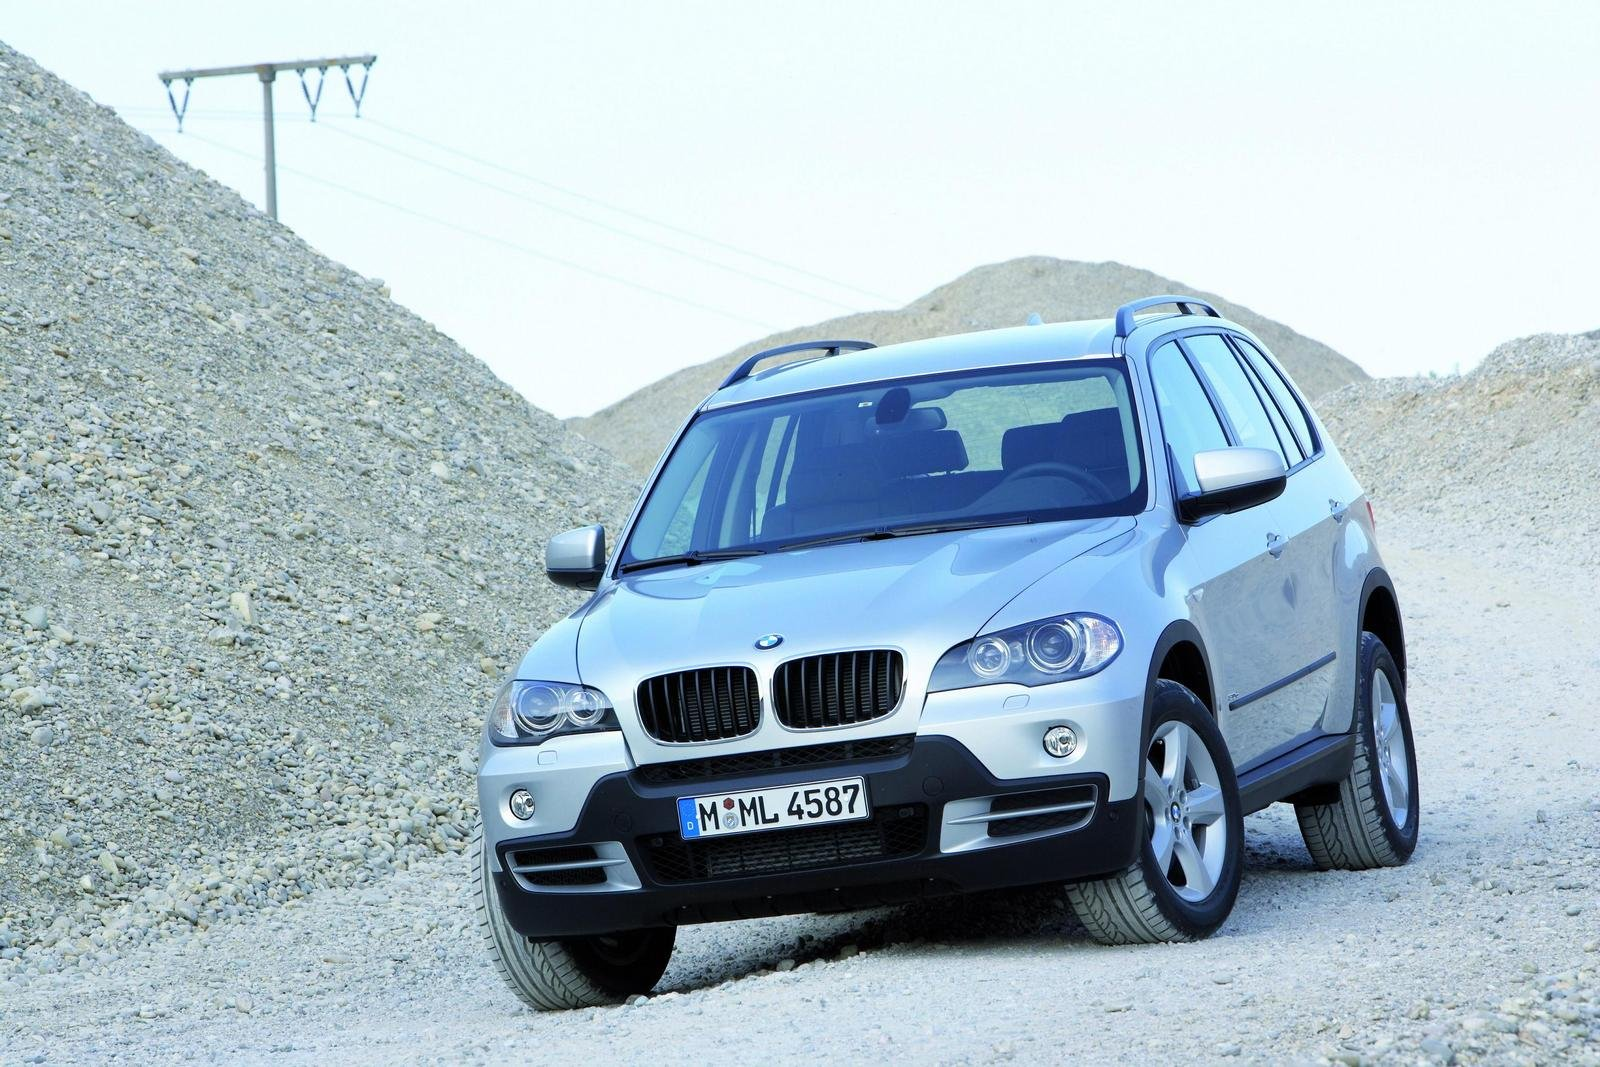 2008 Bmw X5 Review Top Speed